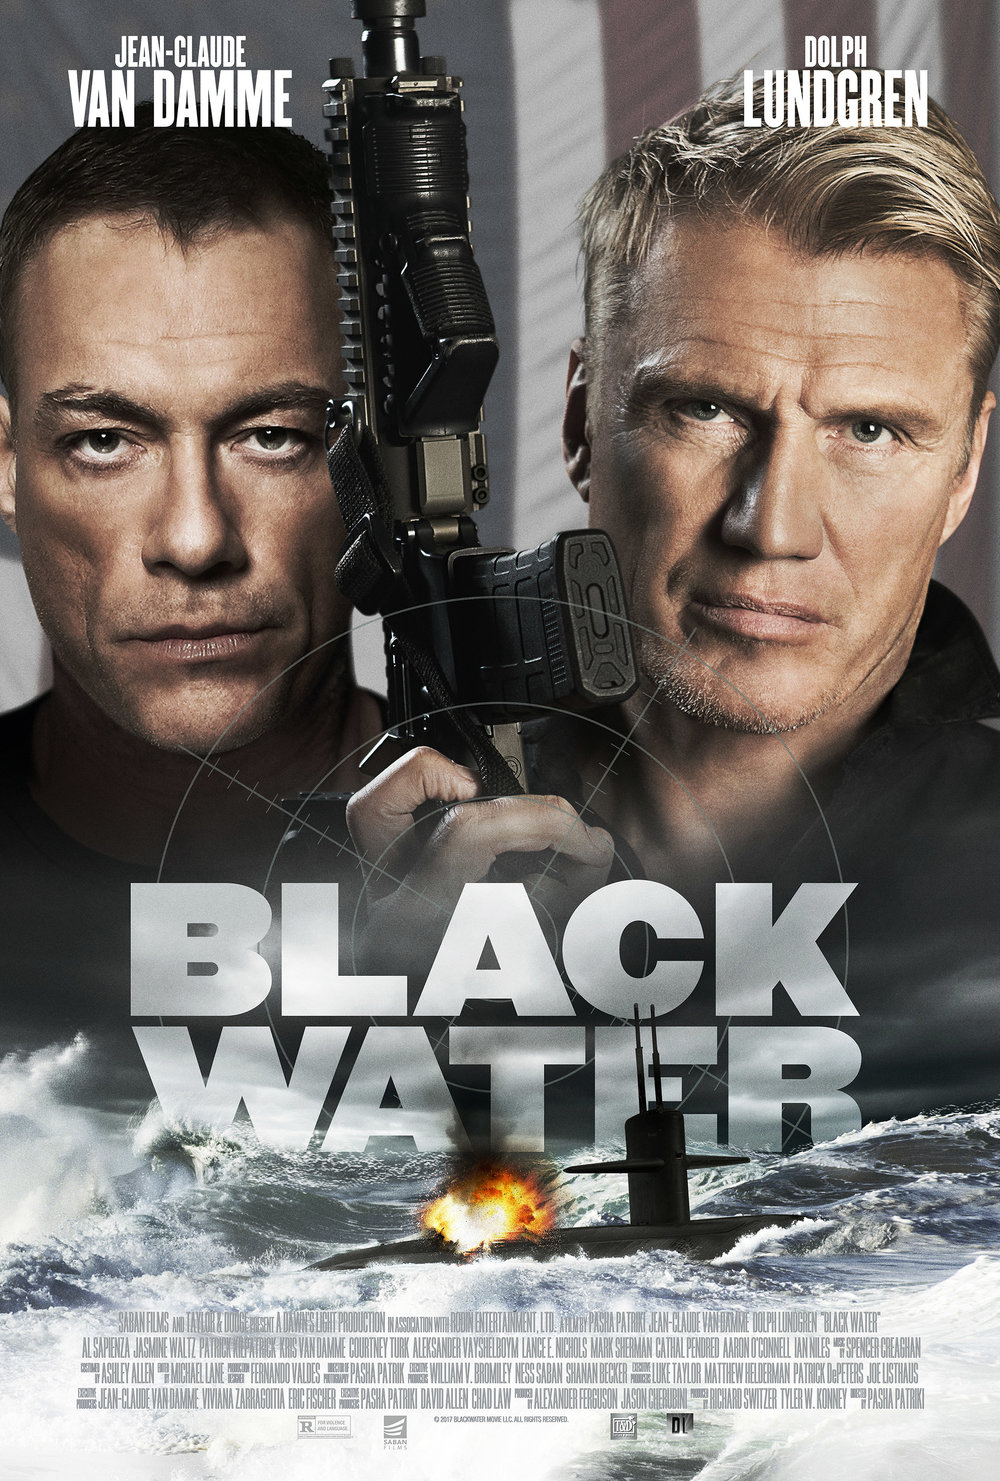 jean-claude-van-damme-and-dolph-lundgren-team-up-in-trailer-for-the-action-thriller-black-water1